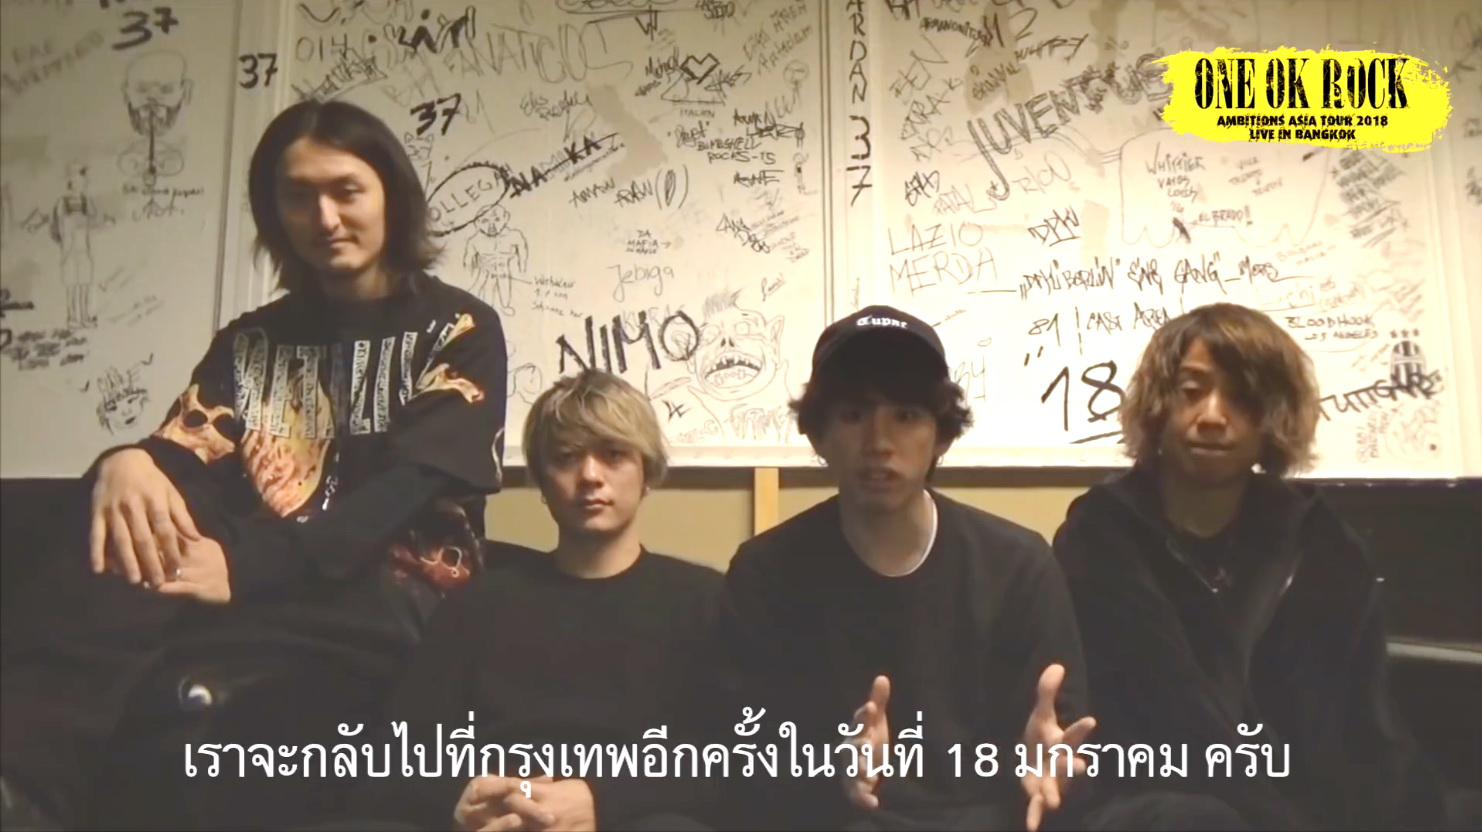 Video Message – ONE OK ROCK AMBITIONS ASIA TOUR 2018 Live in Bangkok by Avalon Live (2)